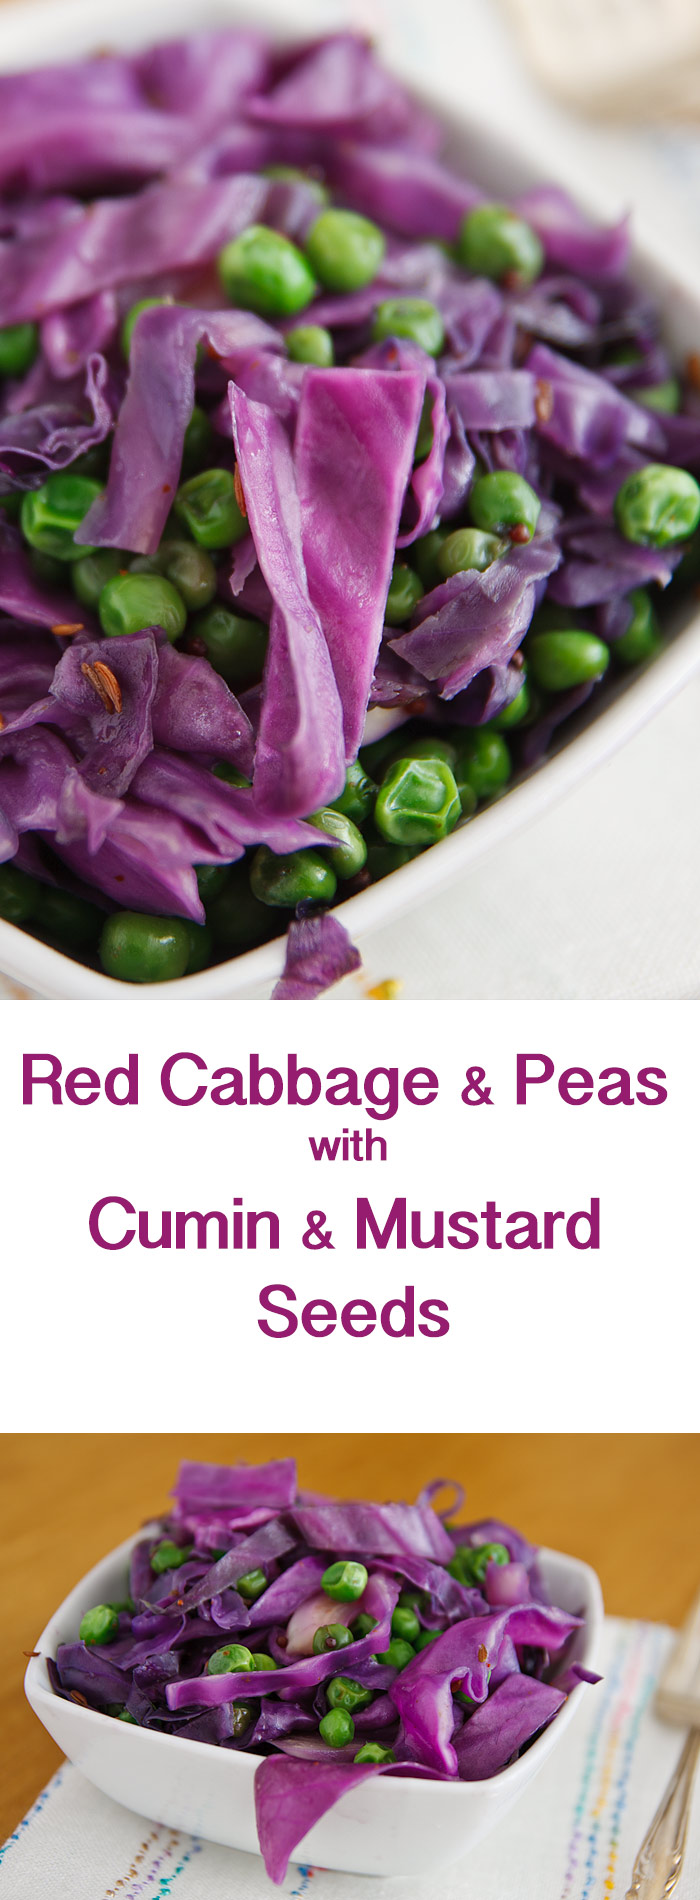 Sautéd red cabbage makes a simple, delicious Indian side dish that is vegan, low-calorie, and low-fat.